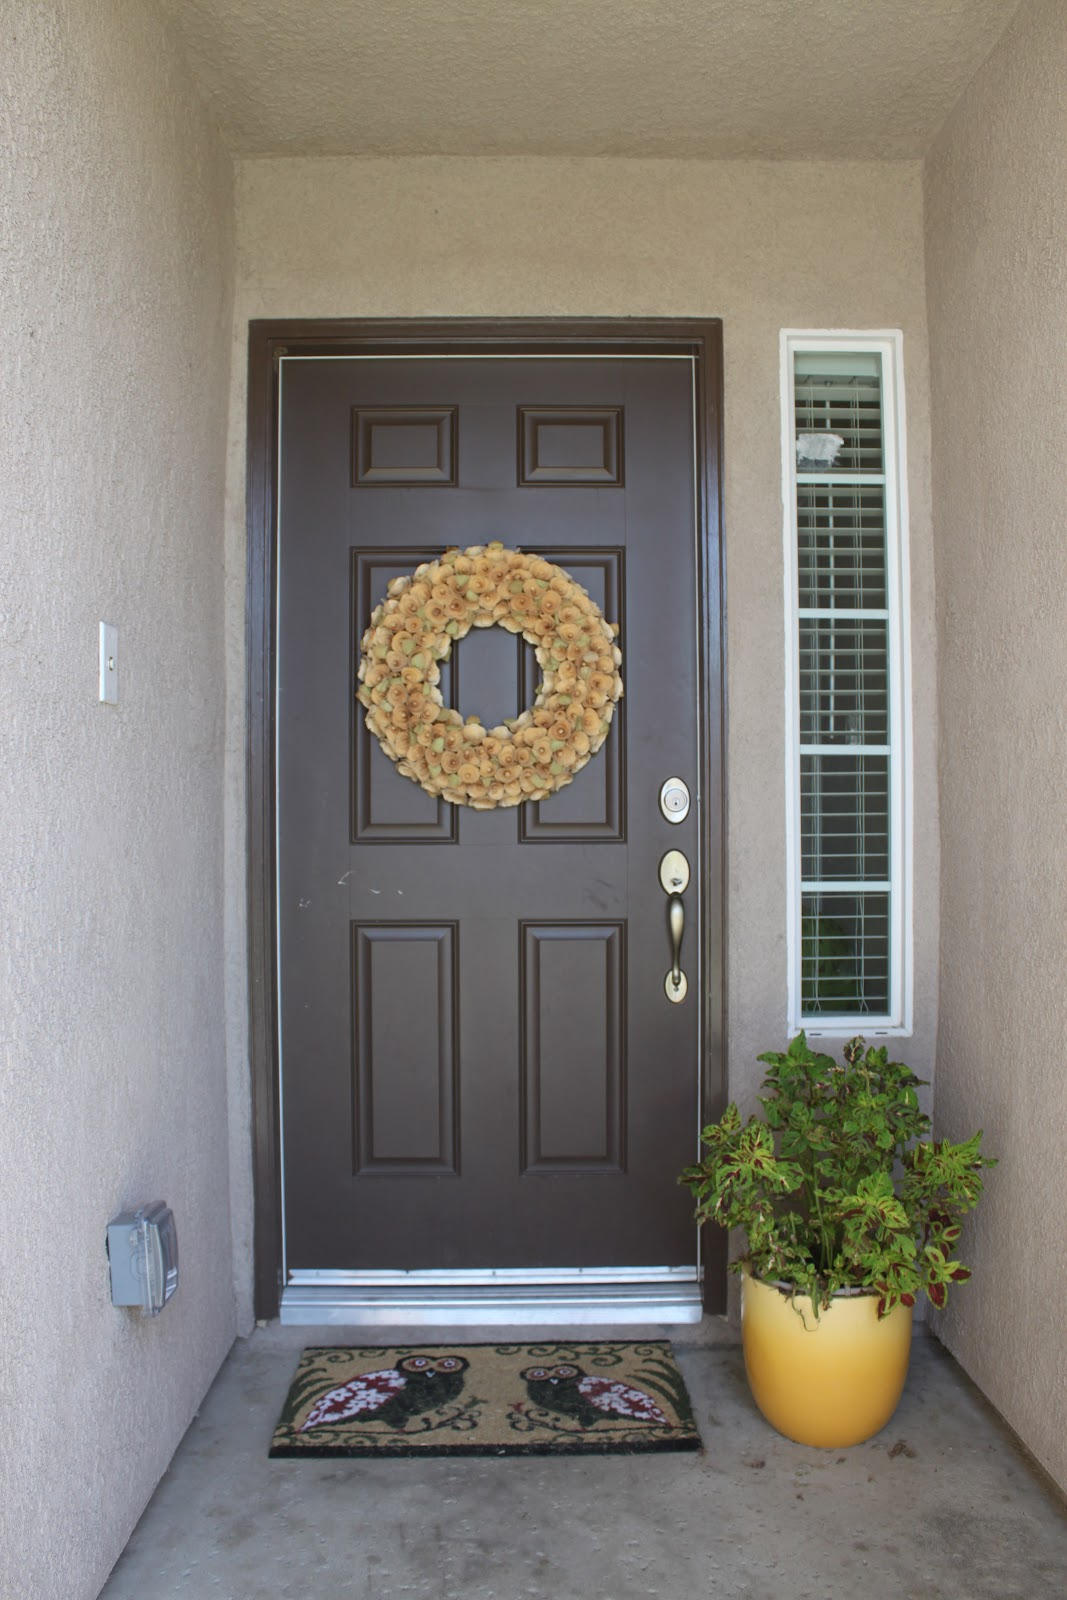 How To Paint A Front Door spray paint the front door! - no. 2 pencil